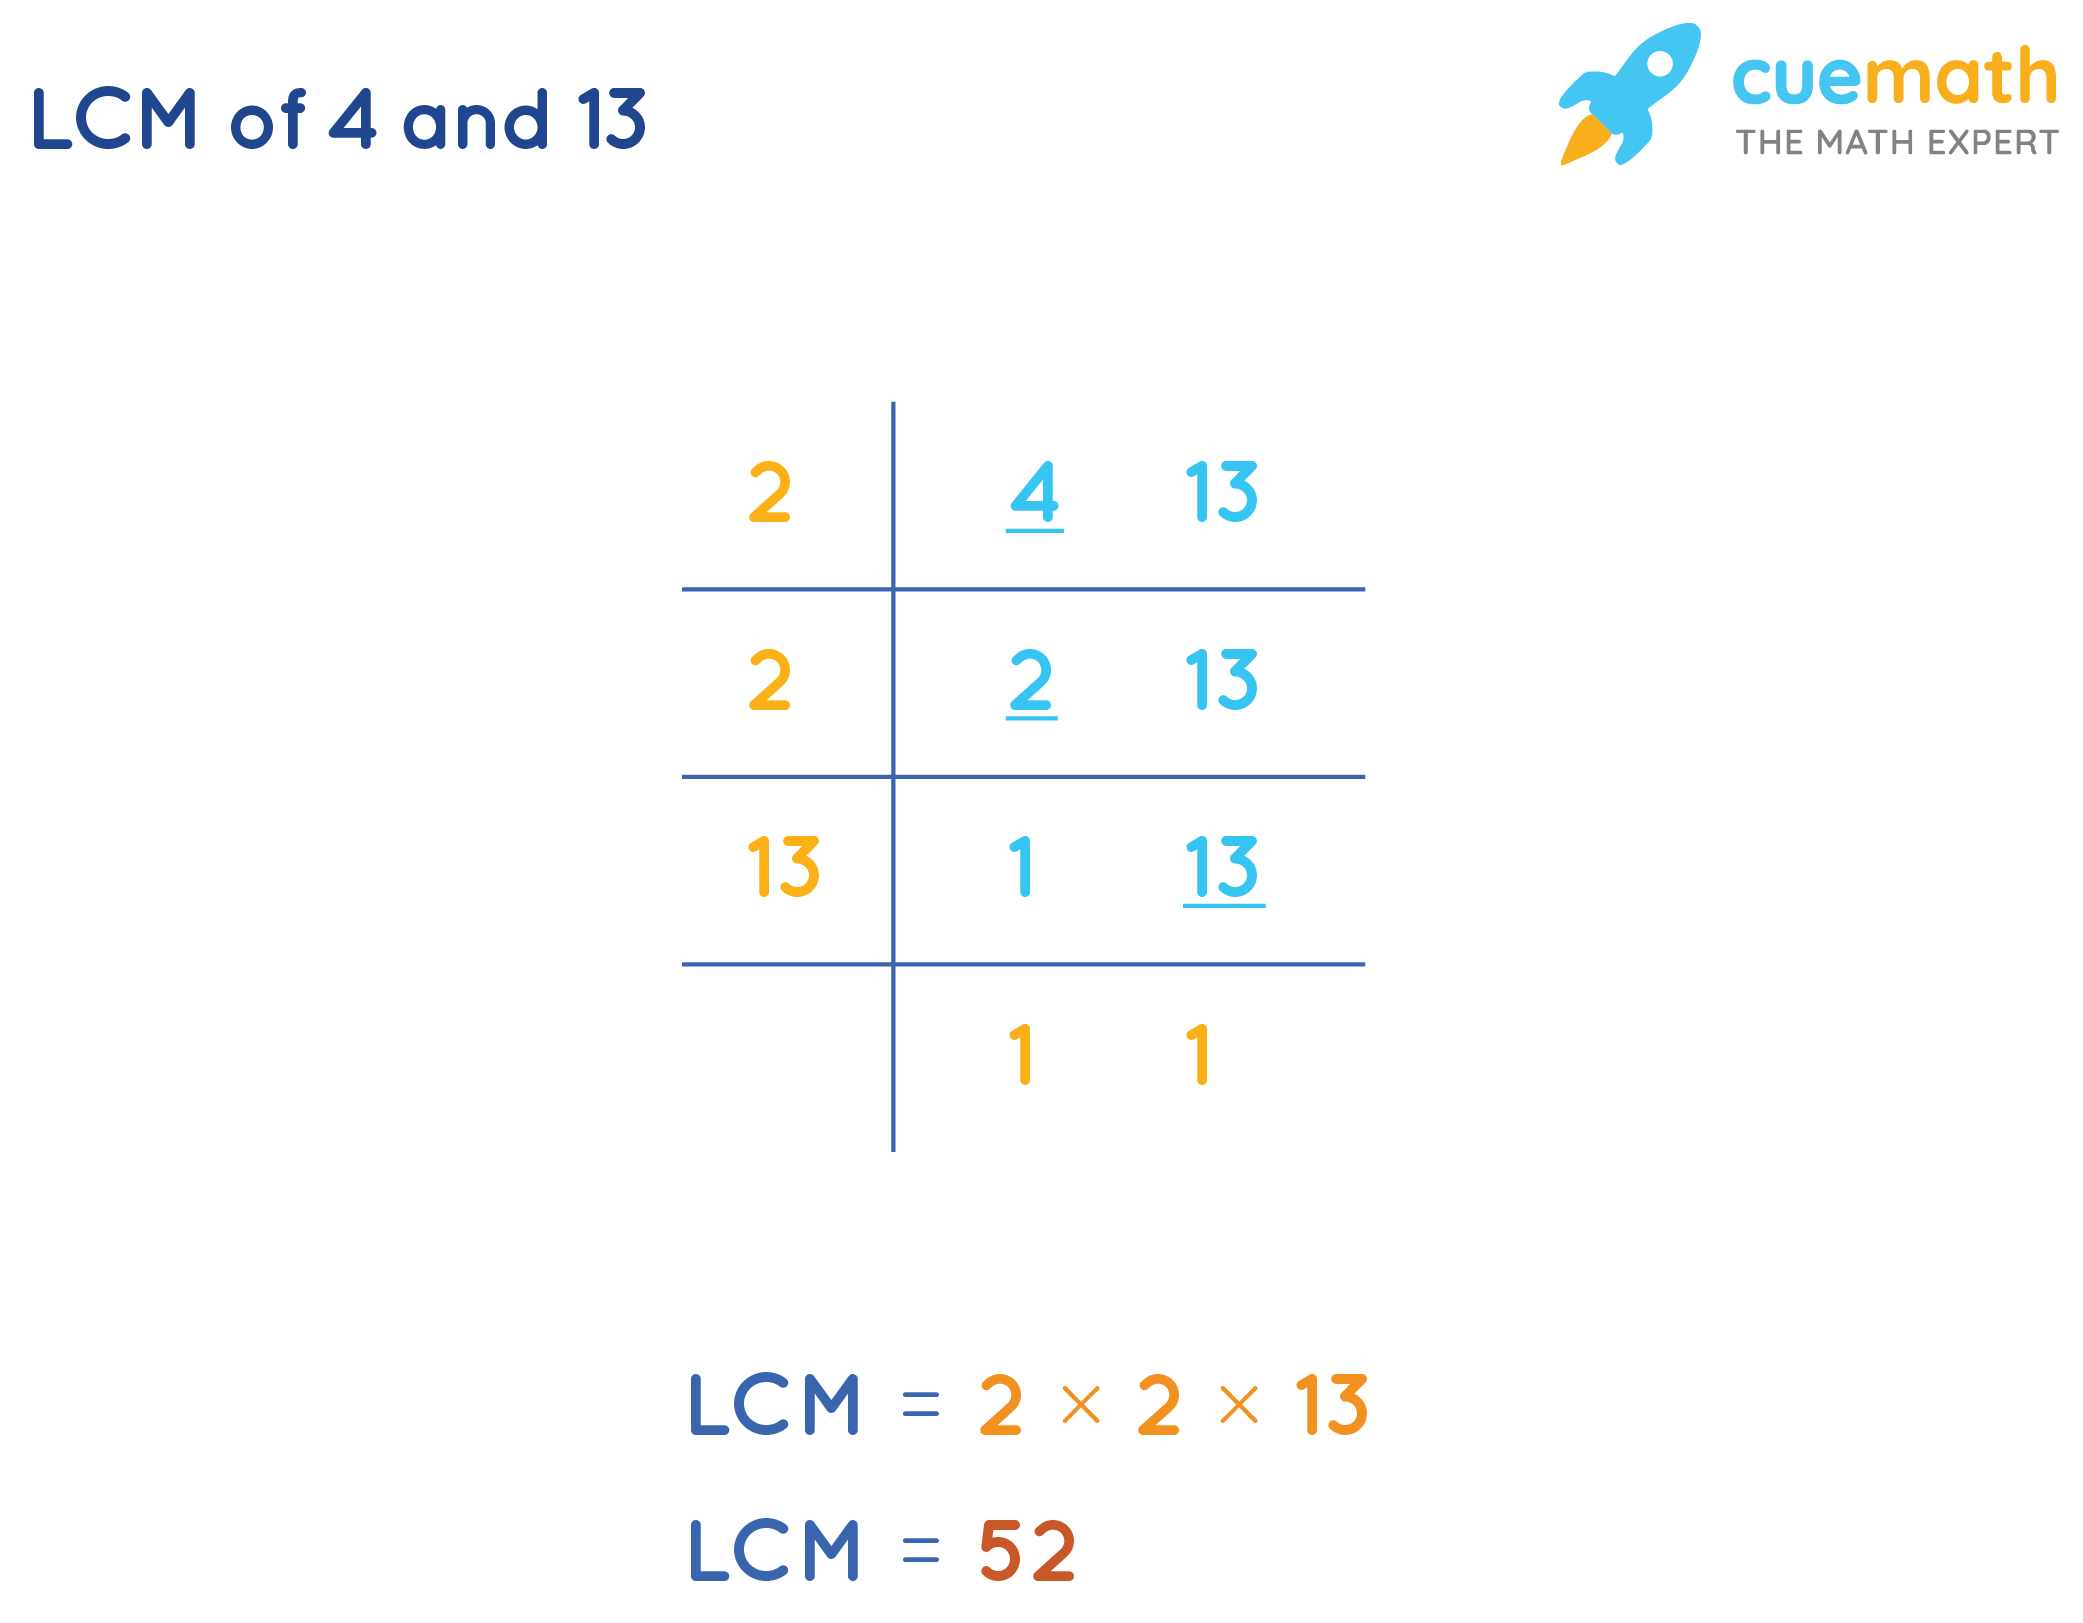 LCM of 4 and 13 is 52